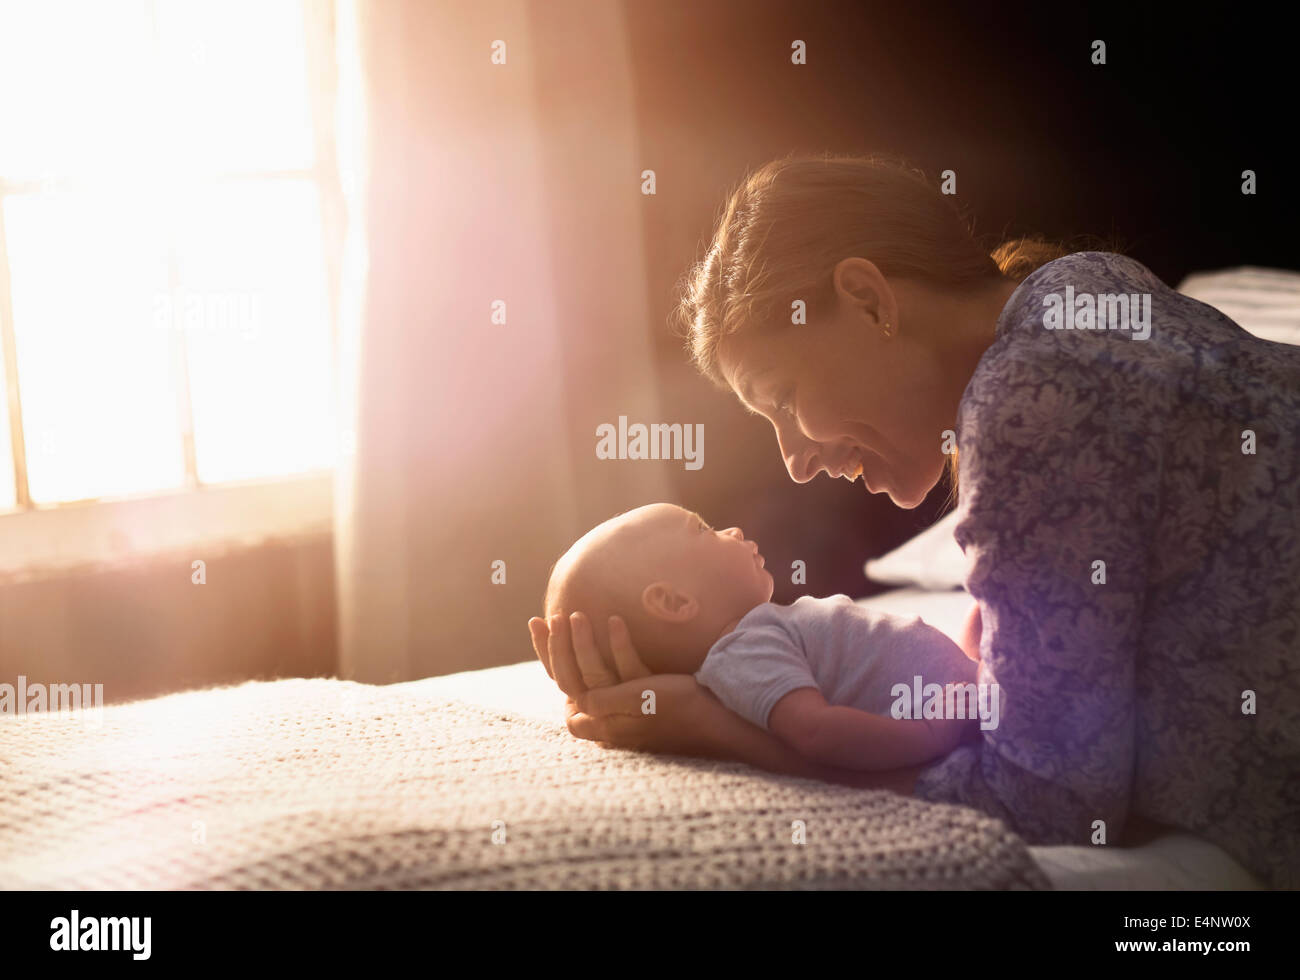 Mother holding baby boy (2-5 months) in bedroom - Stock Image